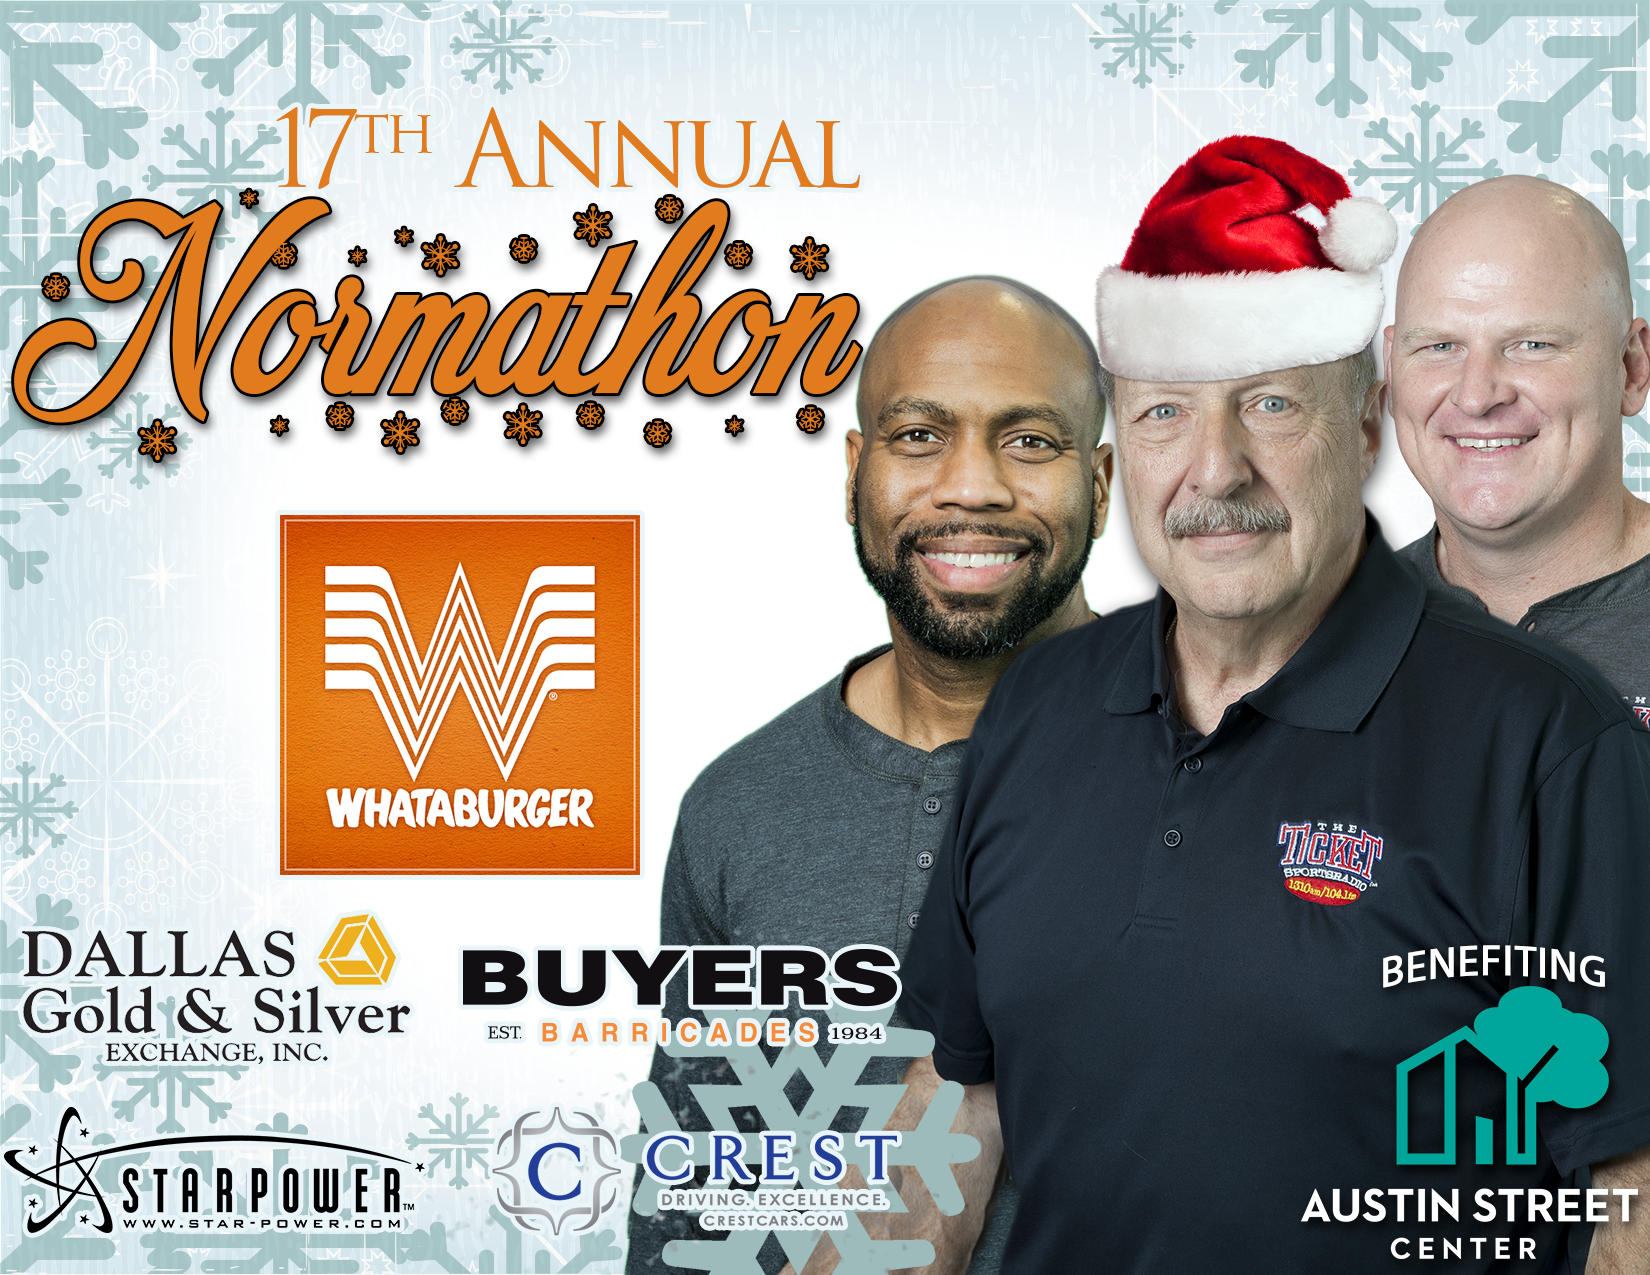 17th annual whataburger normathon at starpower - Is Whataburger Open On Christmas Day